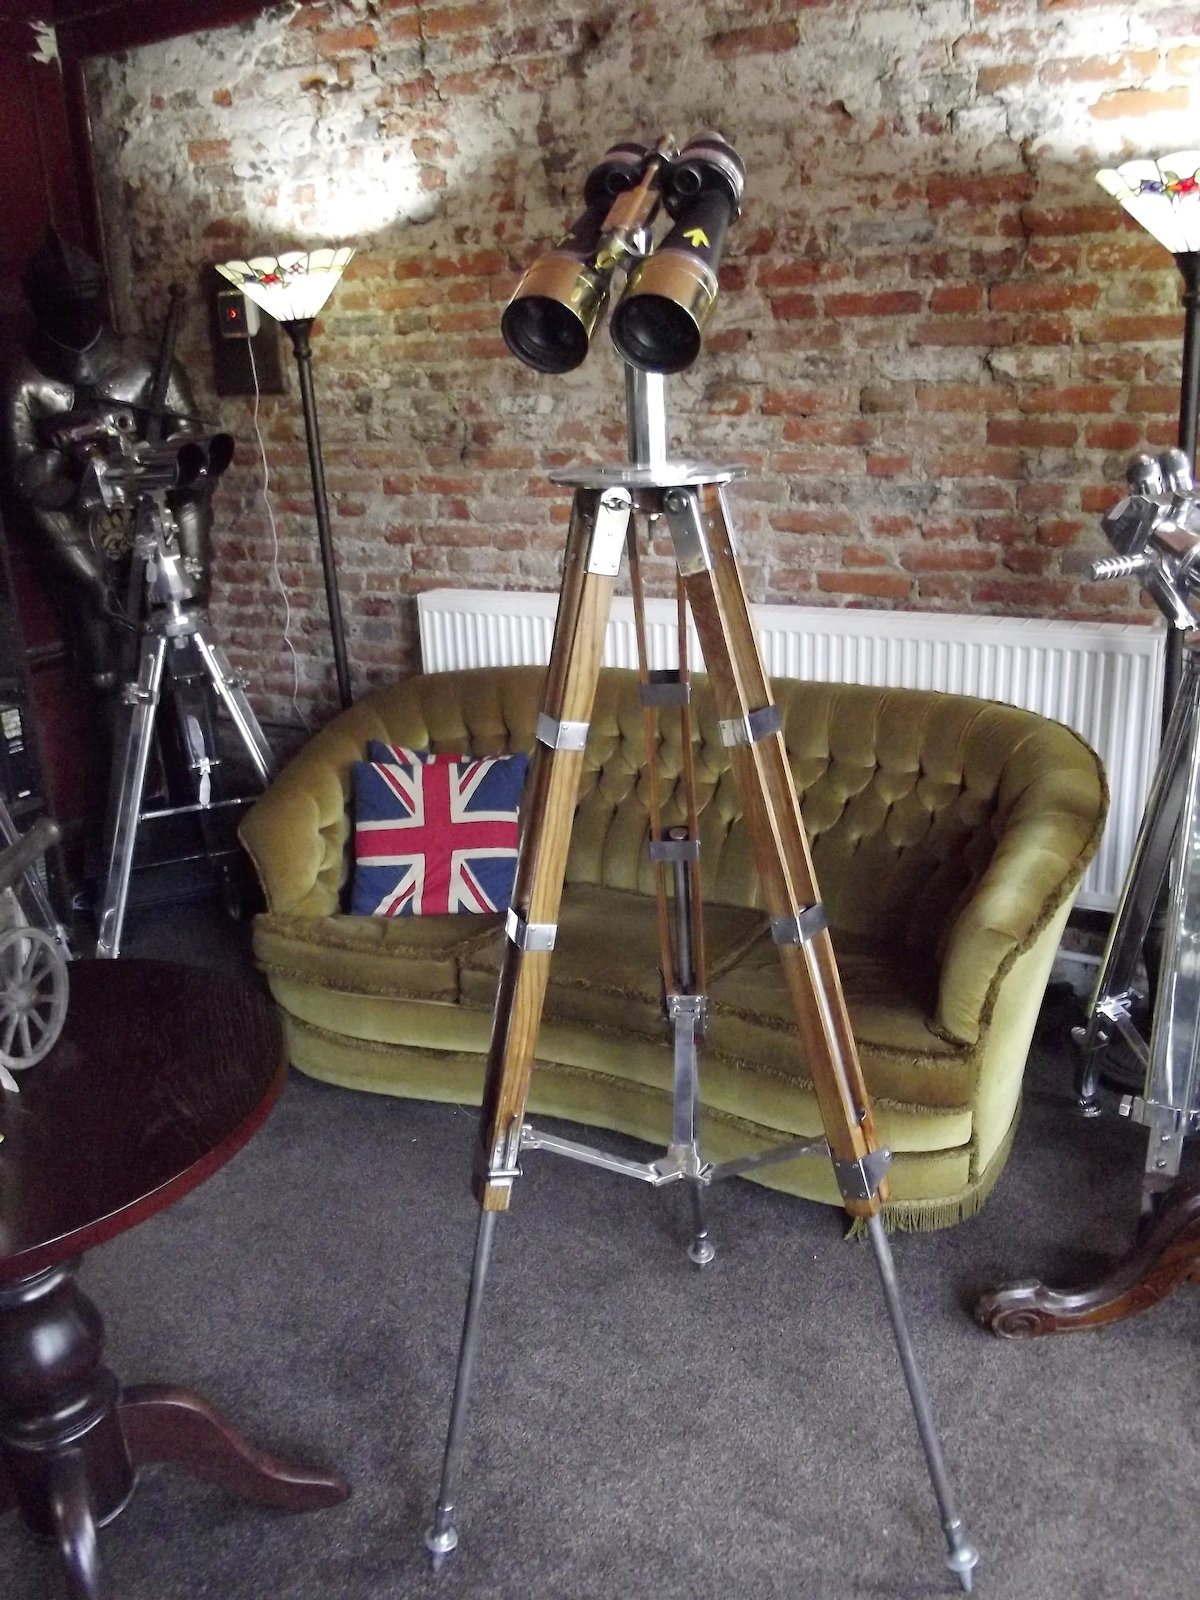 Large Sized WW2 British Navy Ross 10x70 Binoculars On Tripod Stand With Carry Case c1938